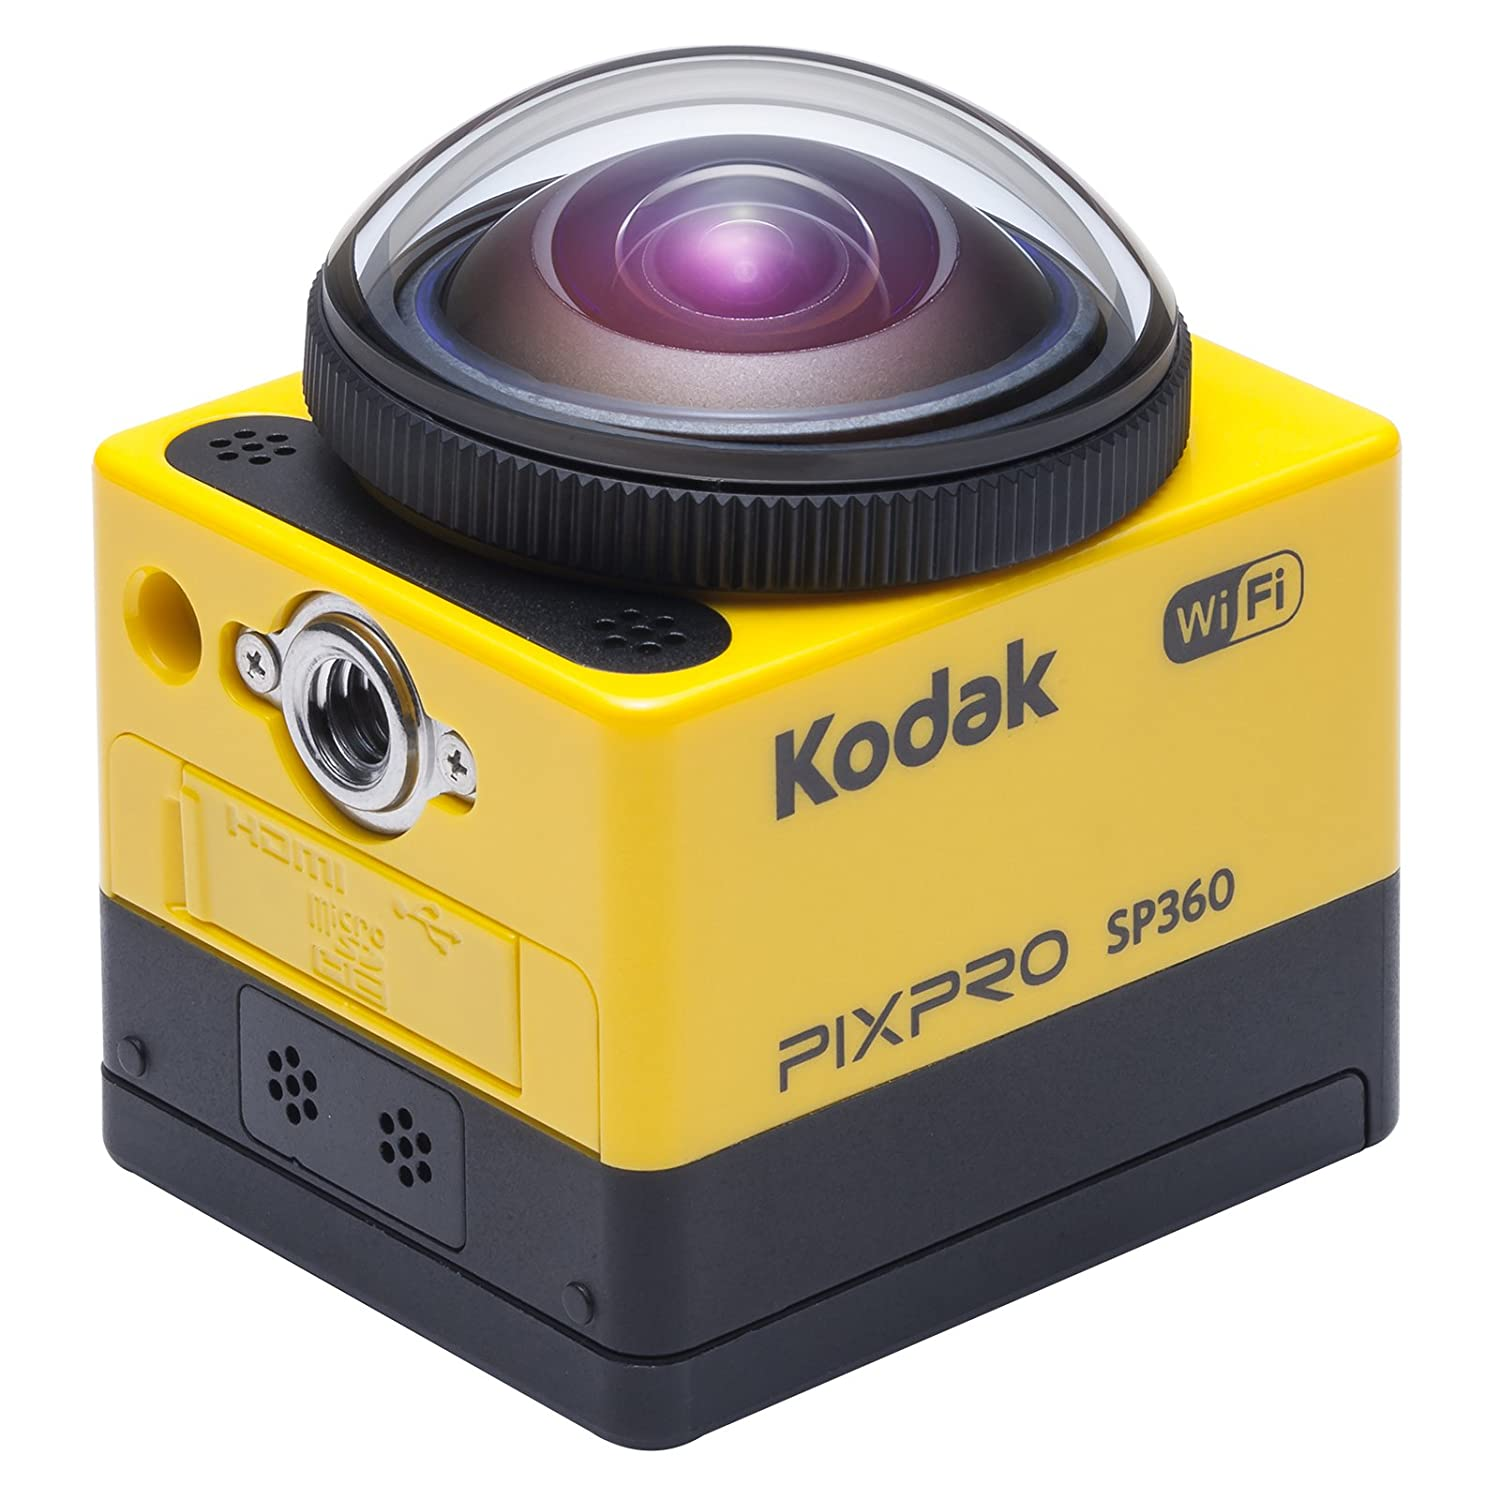 Kodak PixPro SP360 cámara para deporte de acción Full HD MOS 17,52 MP 25,4 / 2,33 mm (1 / 2.33